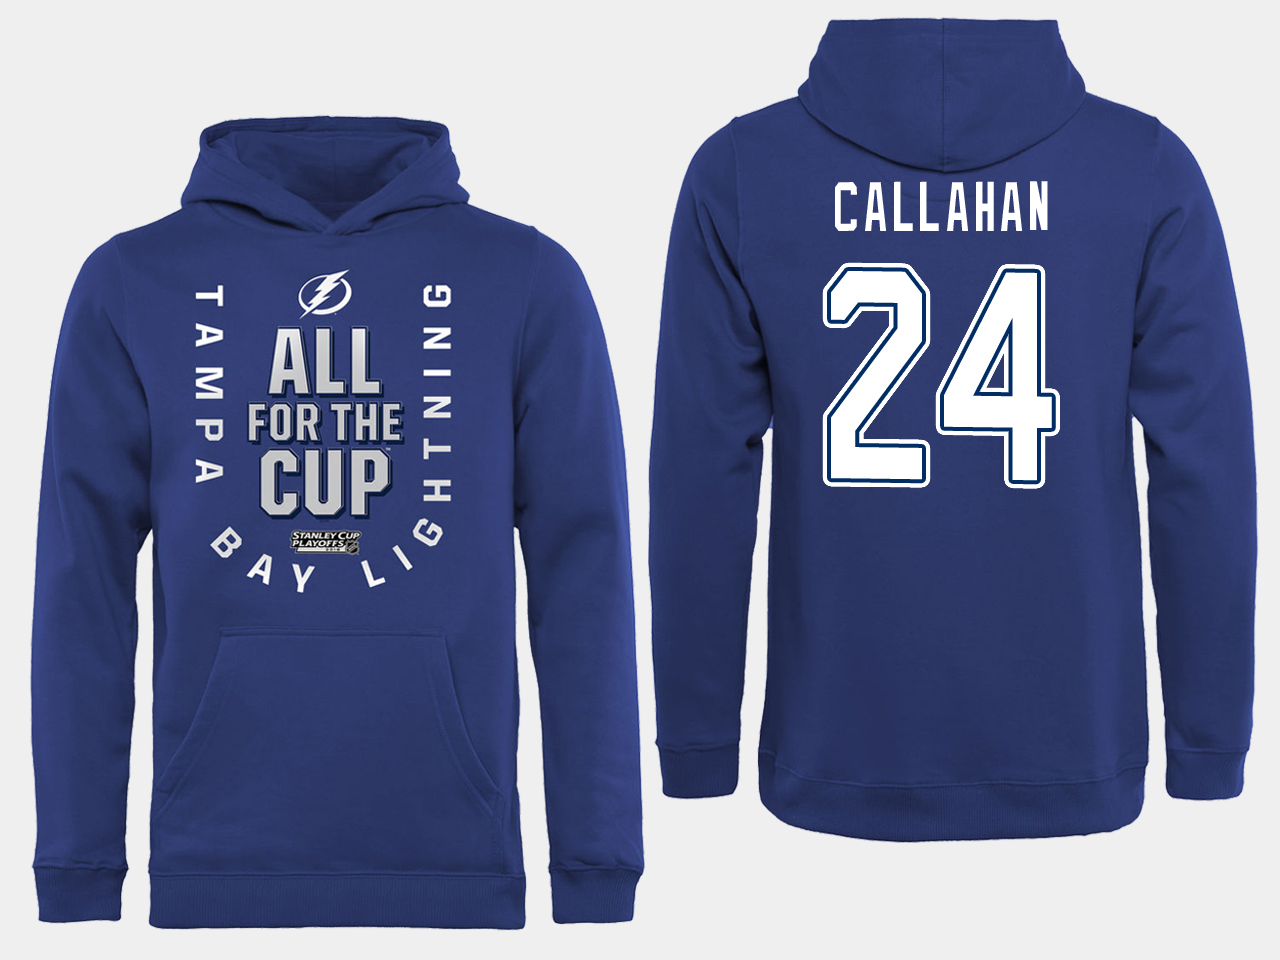 NHL Men adidas Tampa Bay Lightning 24 Callahan blue All for the Cup Hoodie